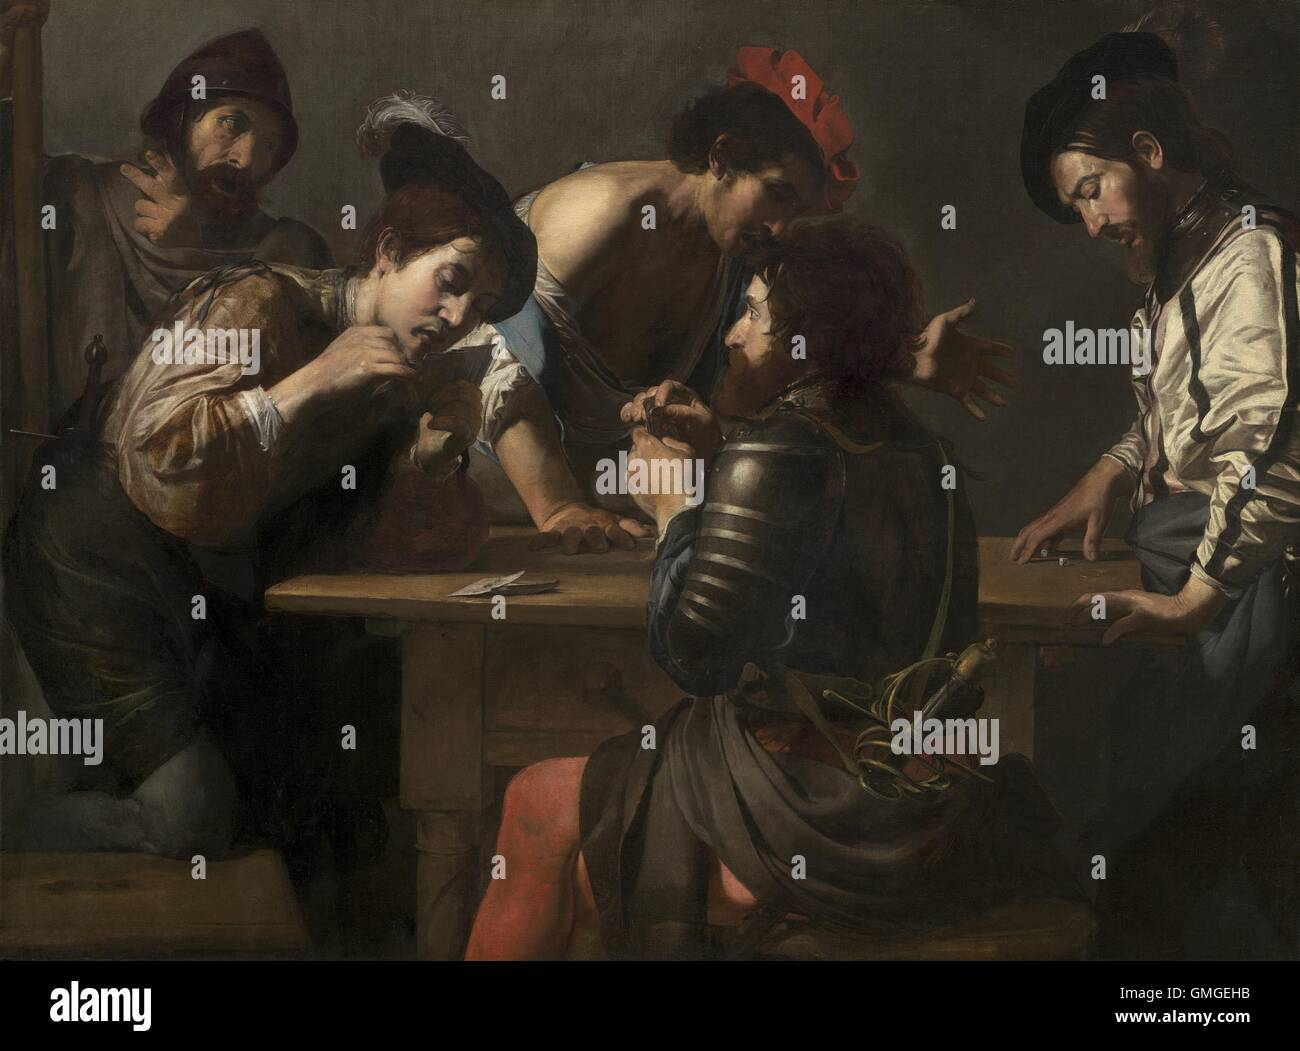 Soldiers Playing Cards and Dice (The Cheats), by Valentin de Boulogne, 1618-20, French painting, oil on canvas. - Stock Image